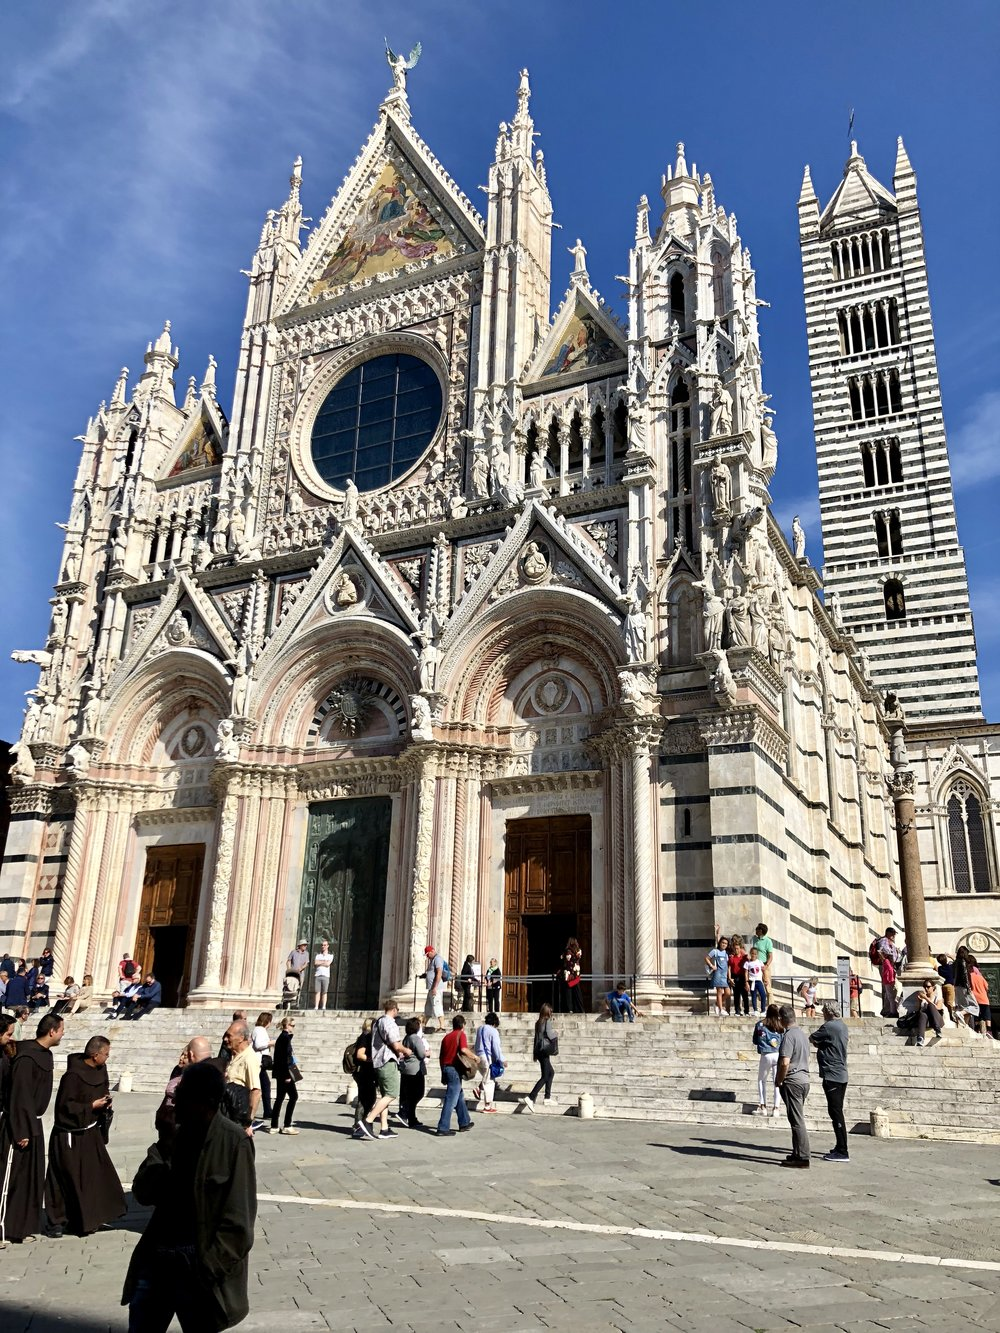 Siena cathedral and bell tower.